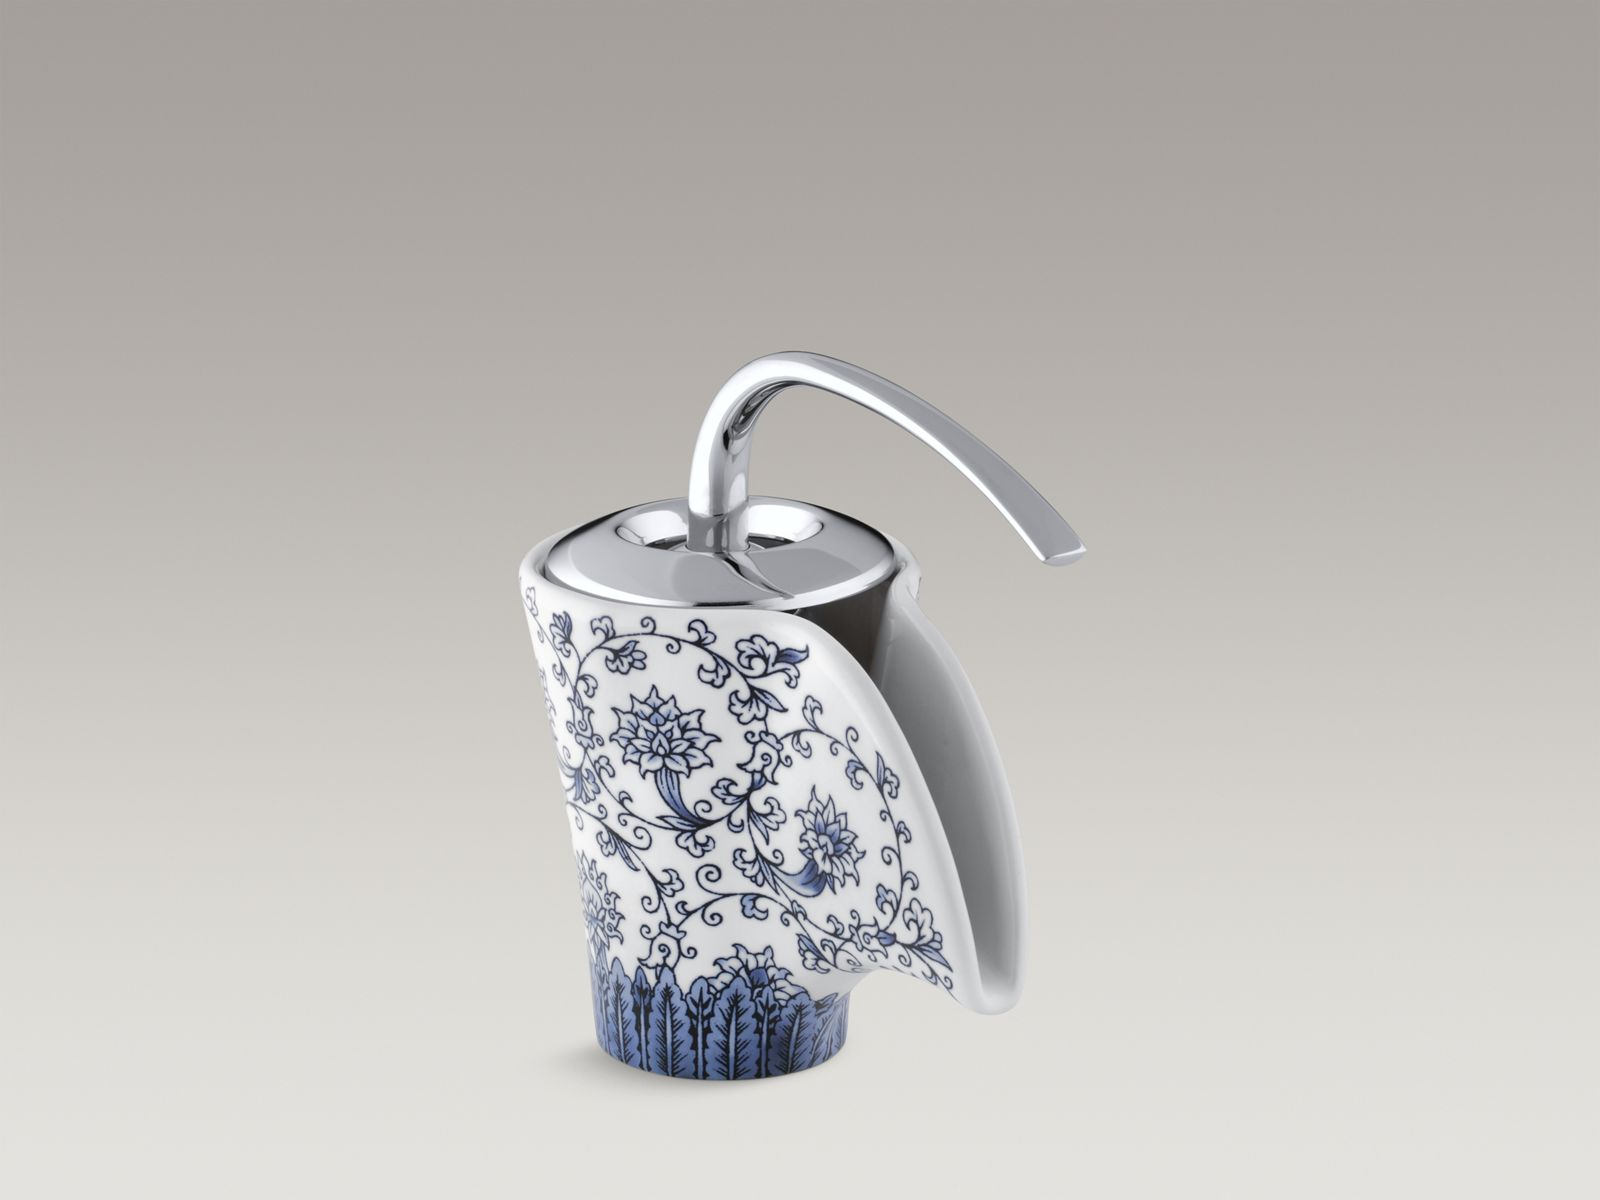 Imperial Blue™ design on Vas® ceramic faucet with lever handle